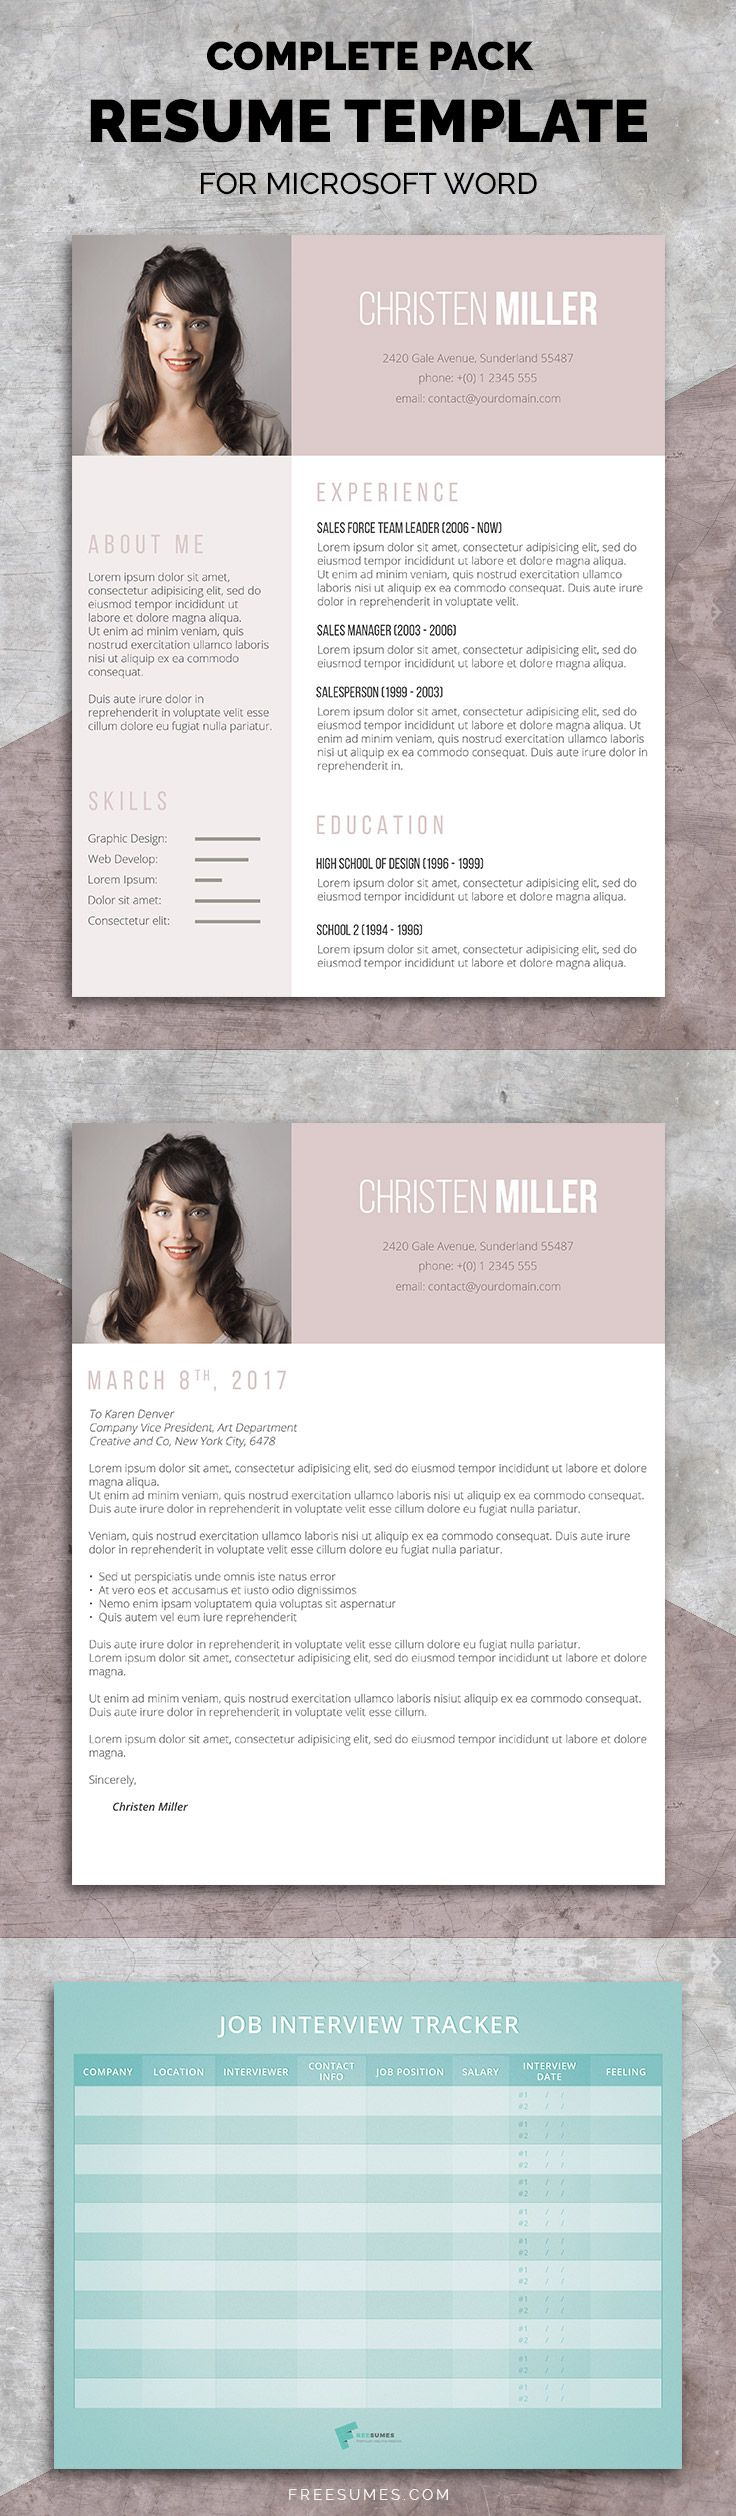 vintage rose complete resume pack